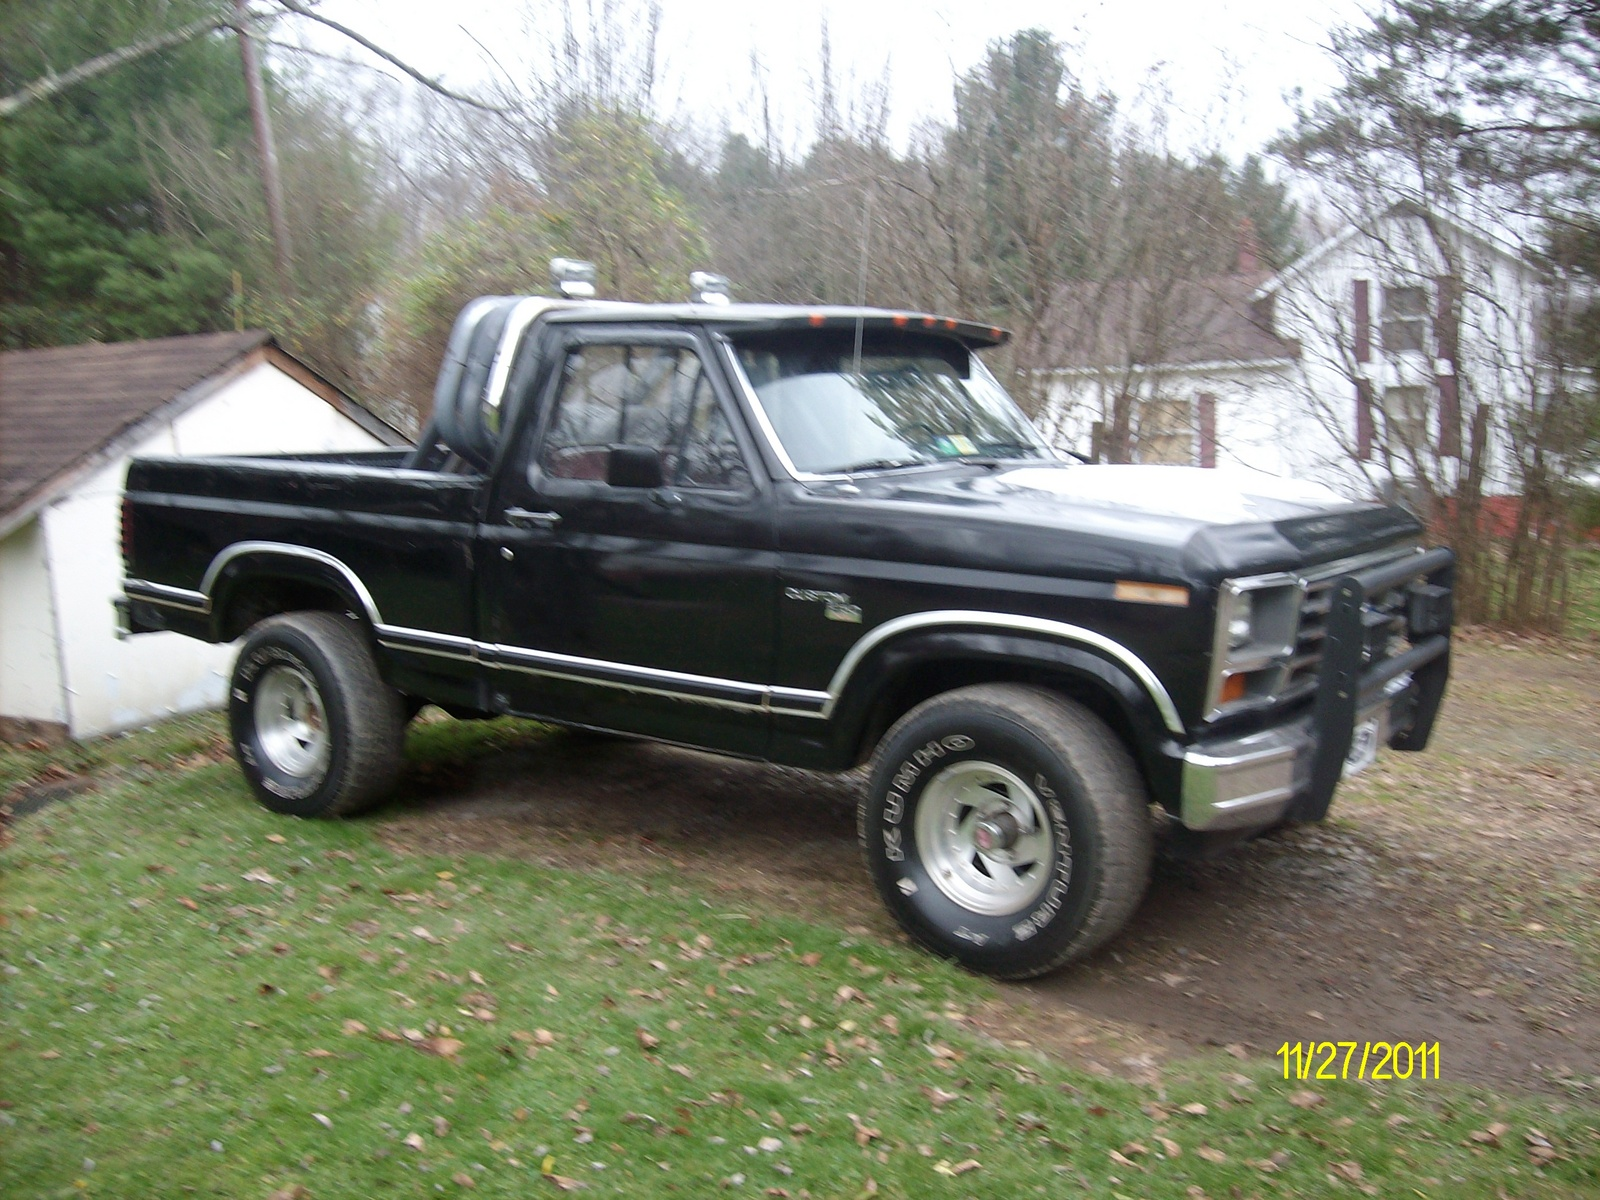 1981 Ford F-150 - Pictures - CarGurus